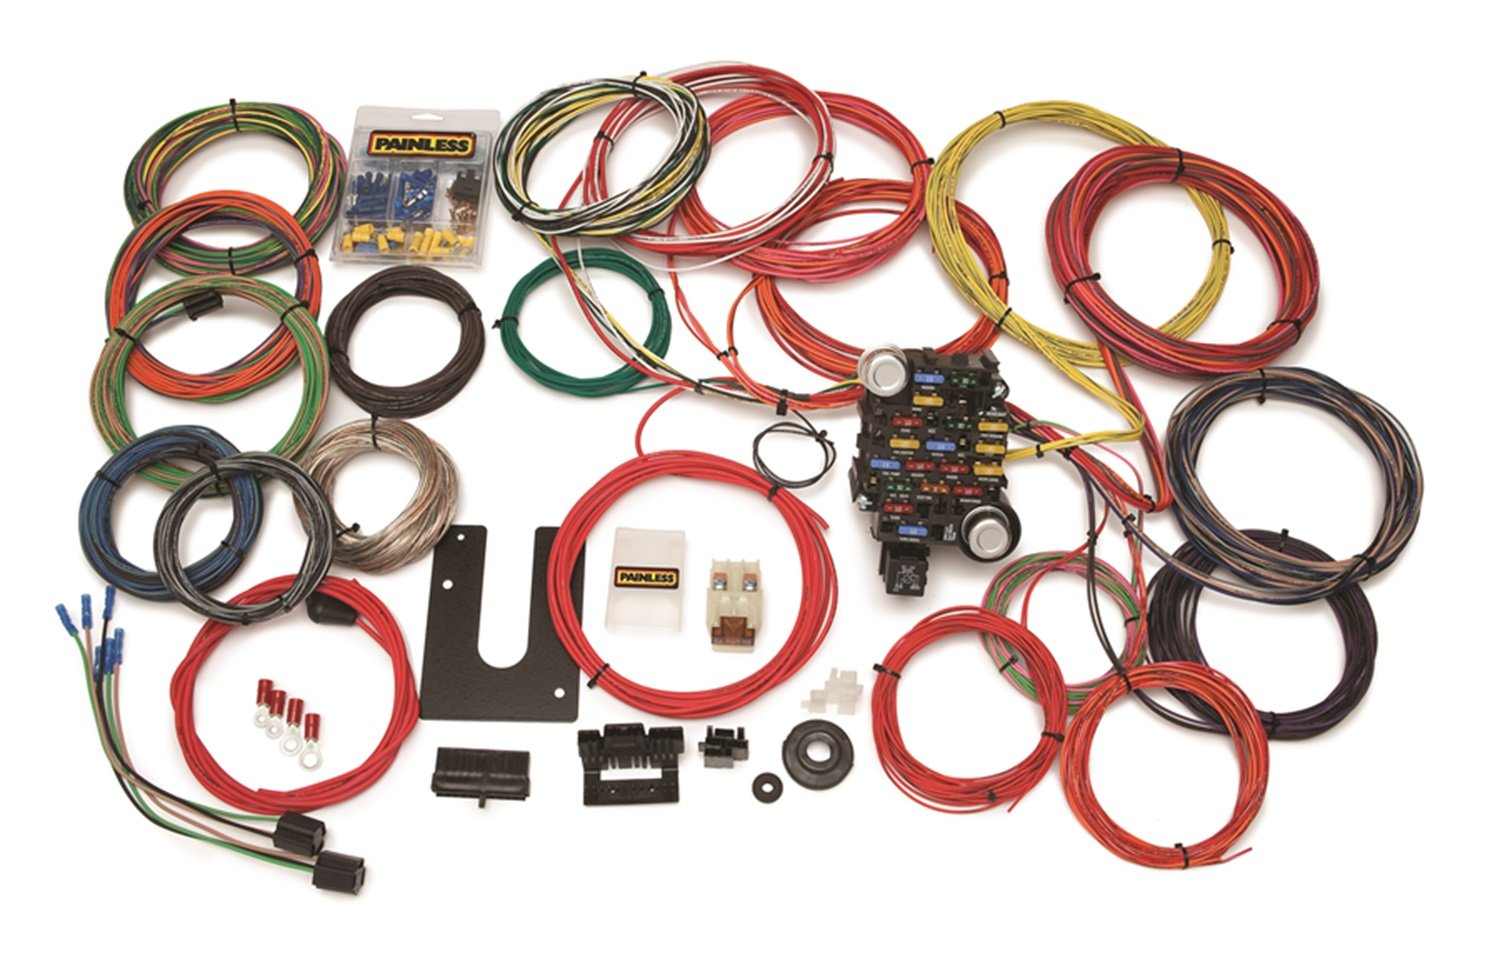 Painless Wiring 10220 28 Circuit Classic Plus Indian Motorcycle Trailer Harness Customizable Trunk Mount Chassis